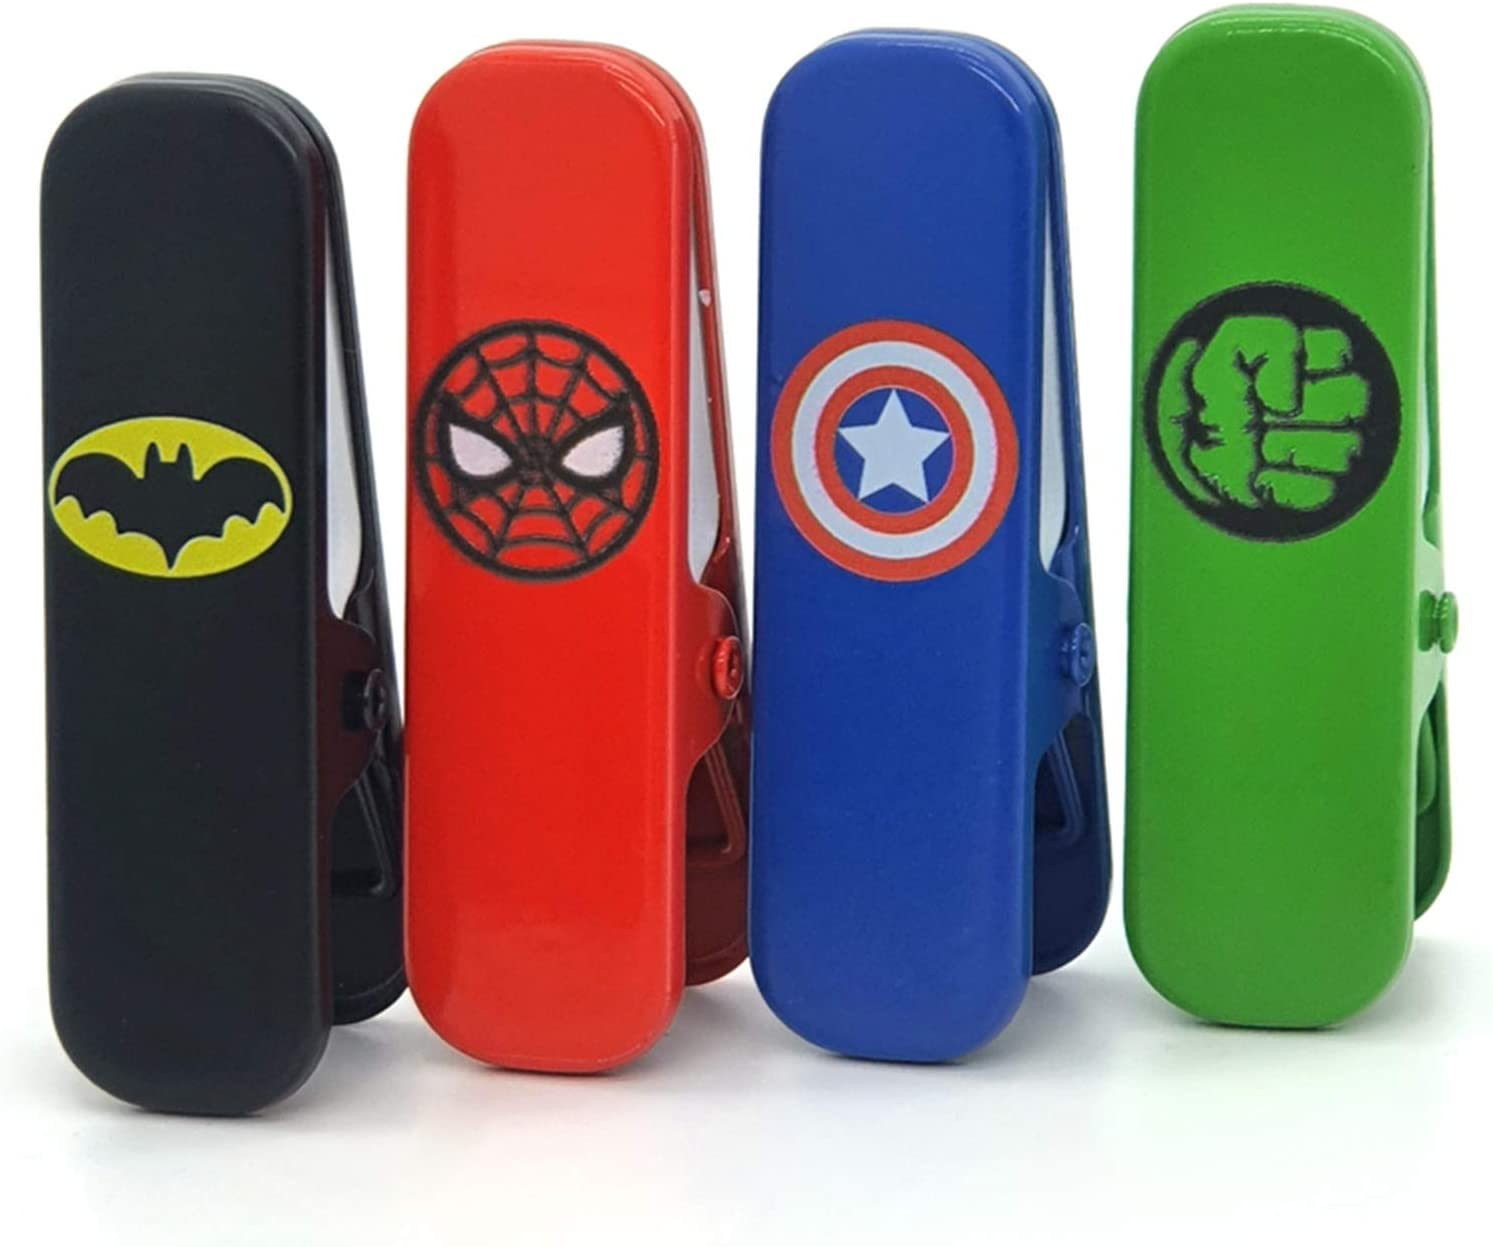 Superhero Chip Bag Clips,Large Heavy Duty Clip for Office Kitchen School,Great for Paper/Food/Photo,DIY Clamps for Record Text (4Pcs)